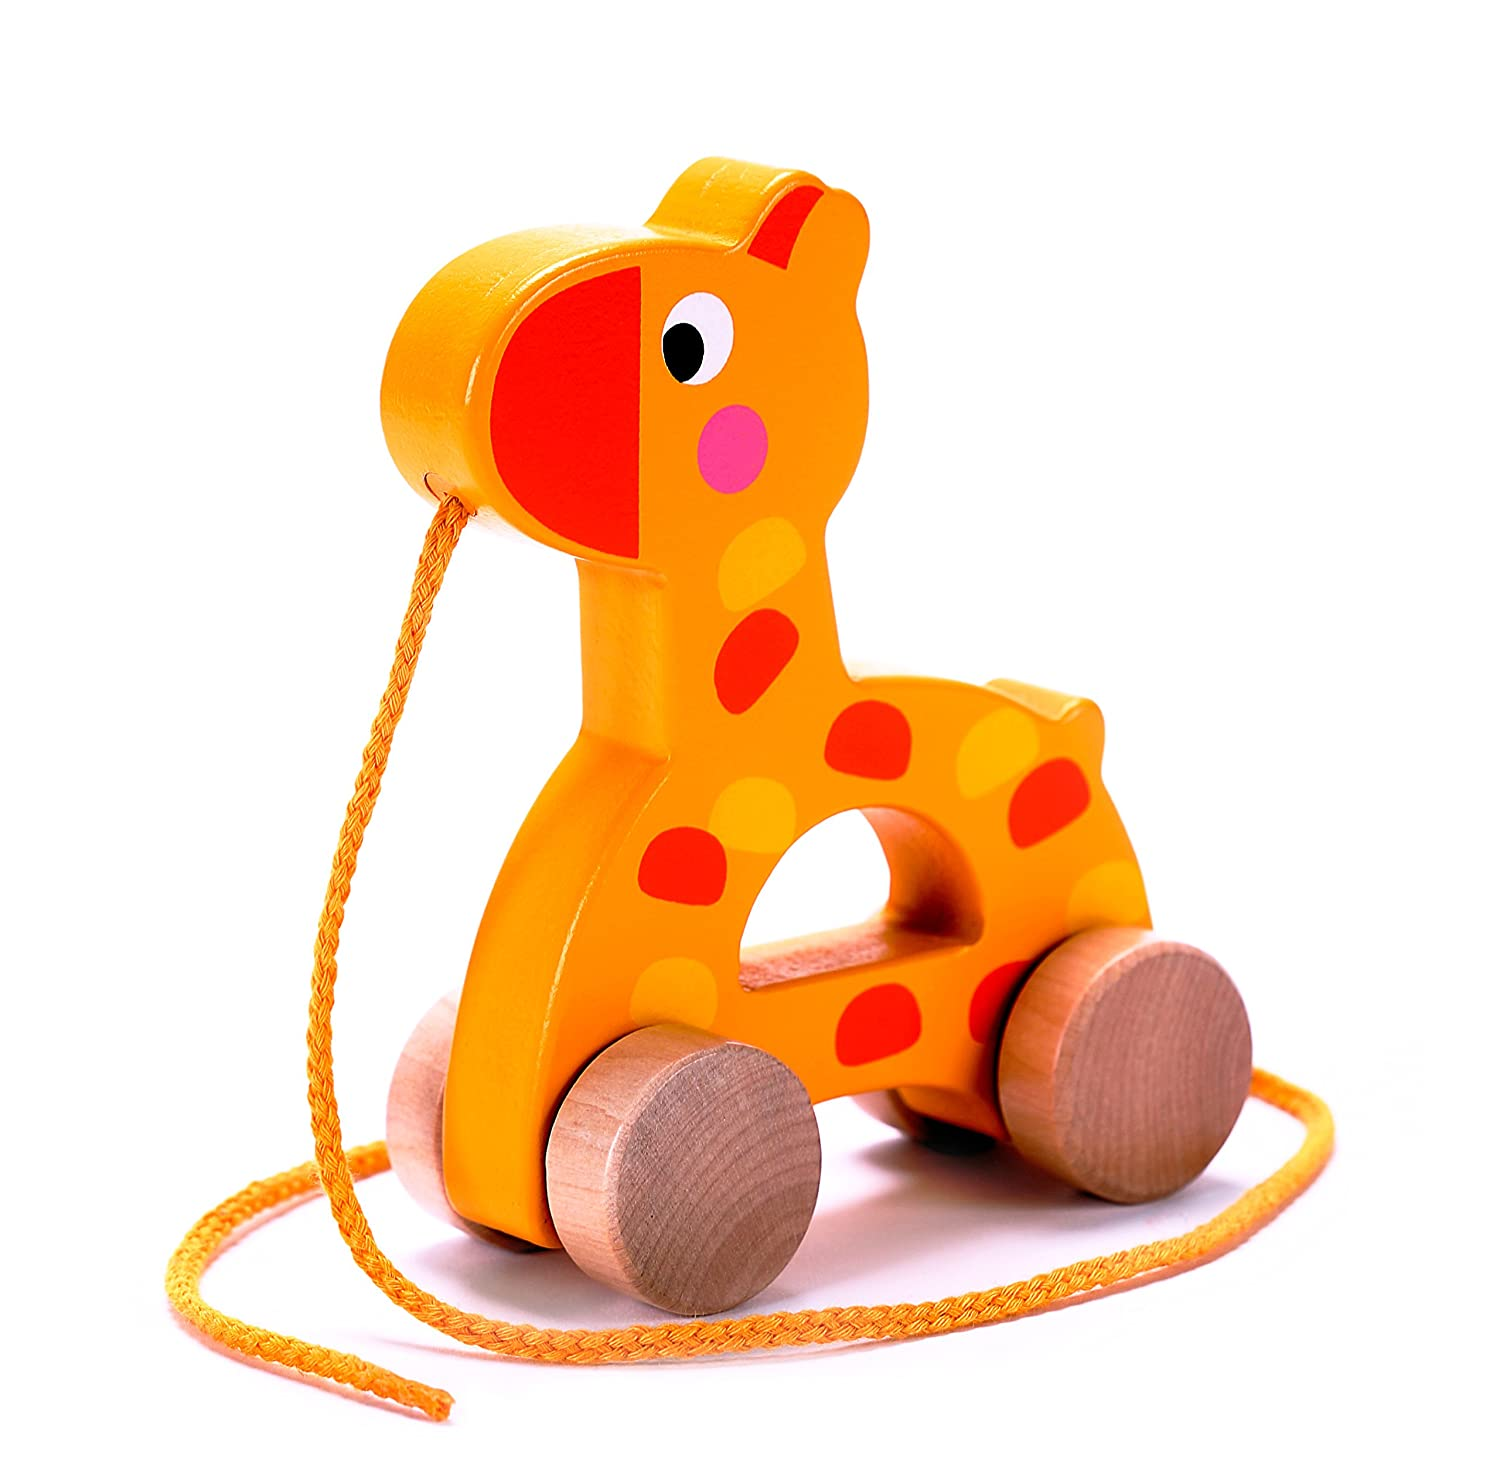 Adorable Giraffe Wooden Pull Along Toy for Baby & Toddler Rolls